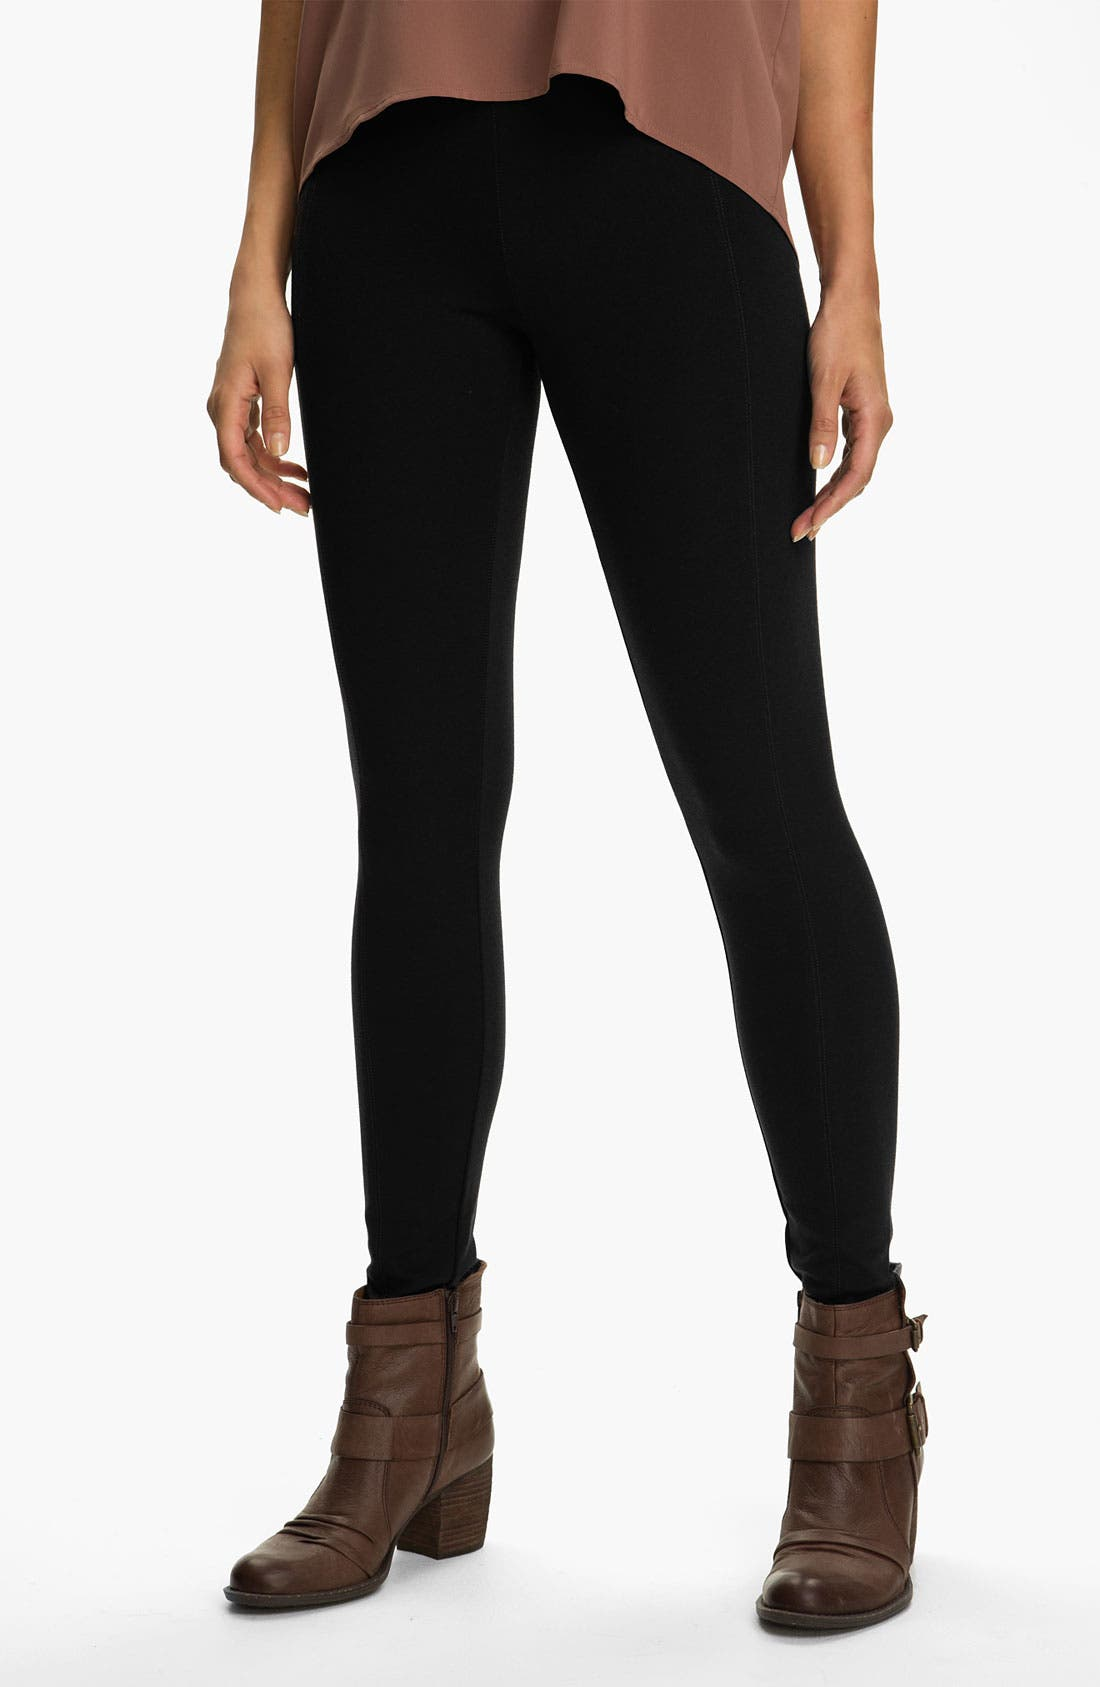 Main Image - Nordstrom 'You Flatter Me' Leggings